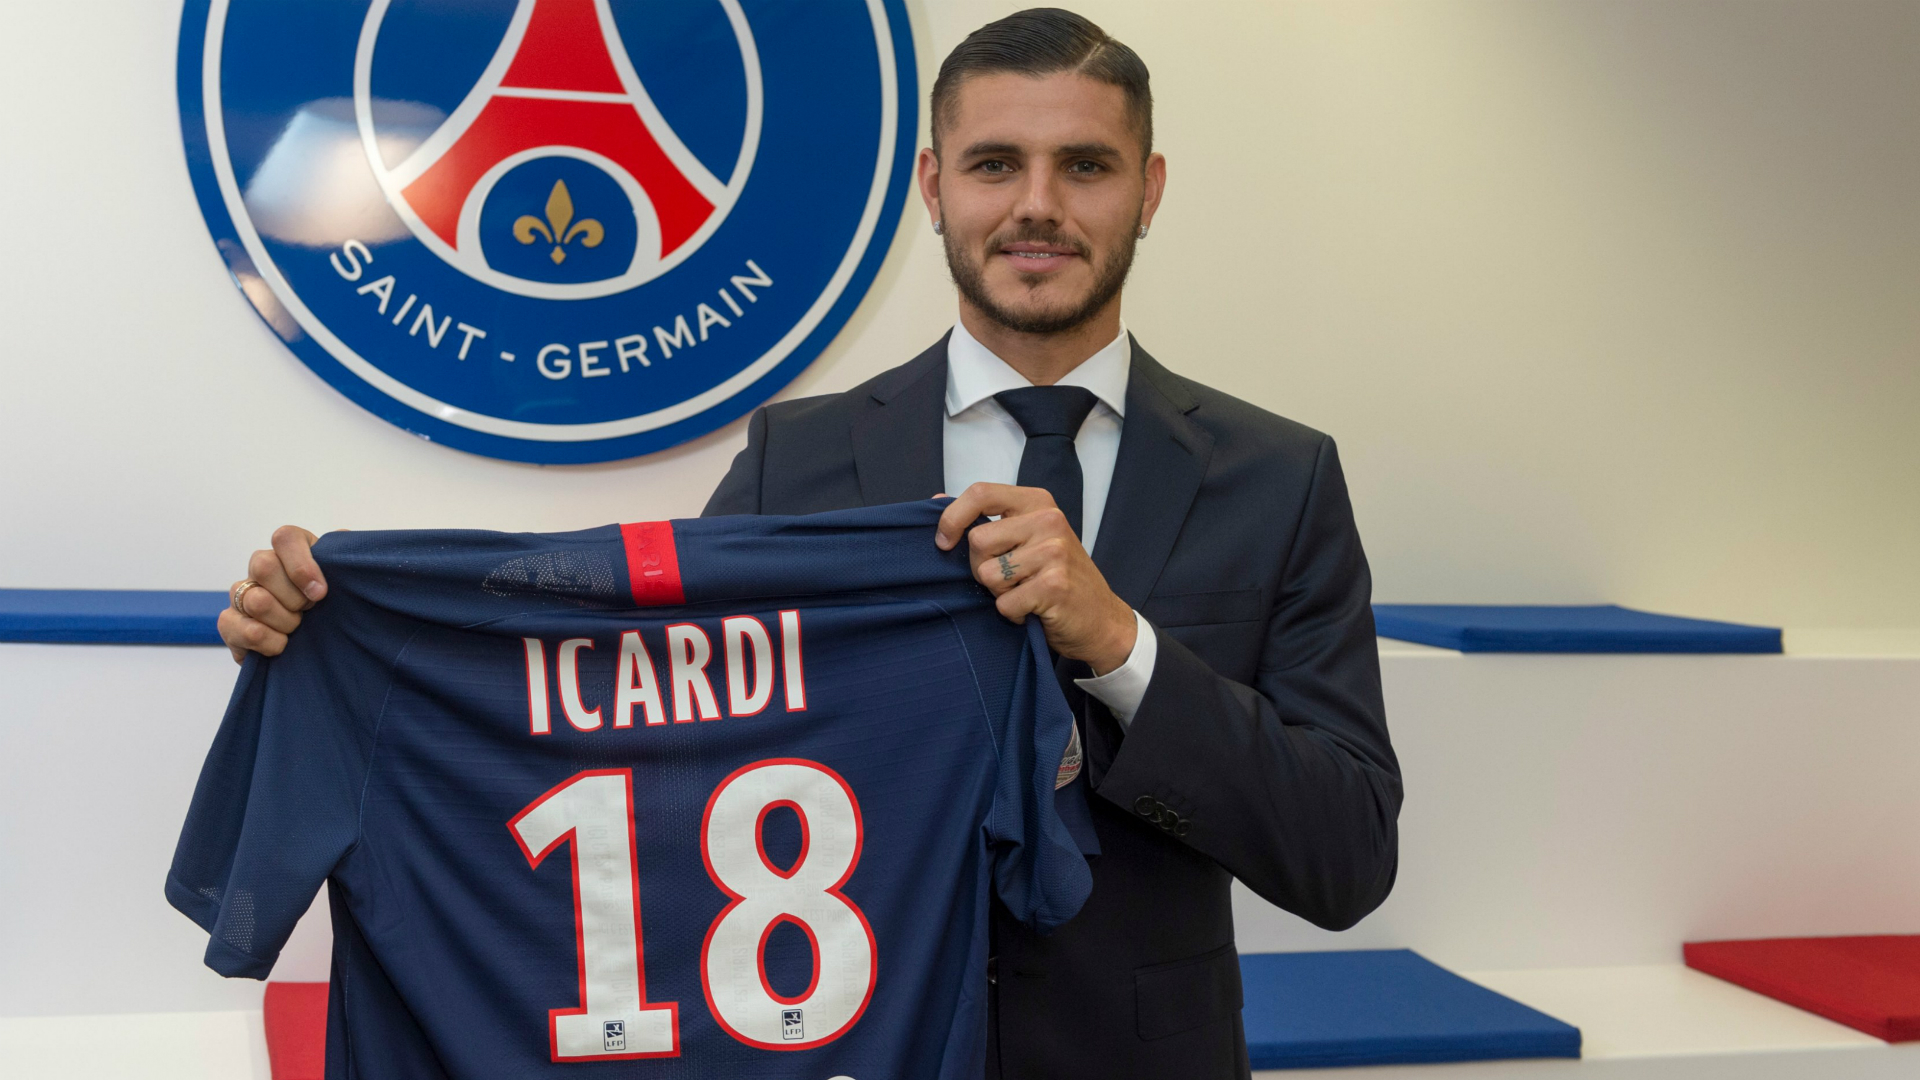 Di Canio not surprised by Icardi move: PSG's the natural home of undisciplined players